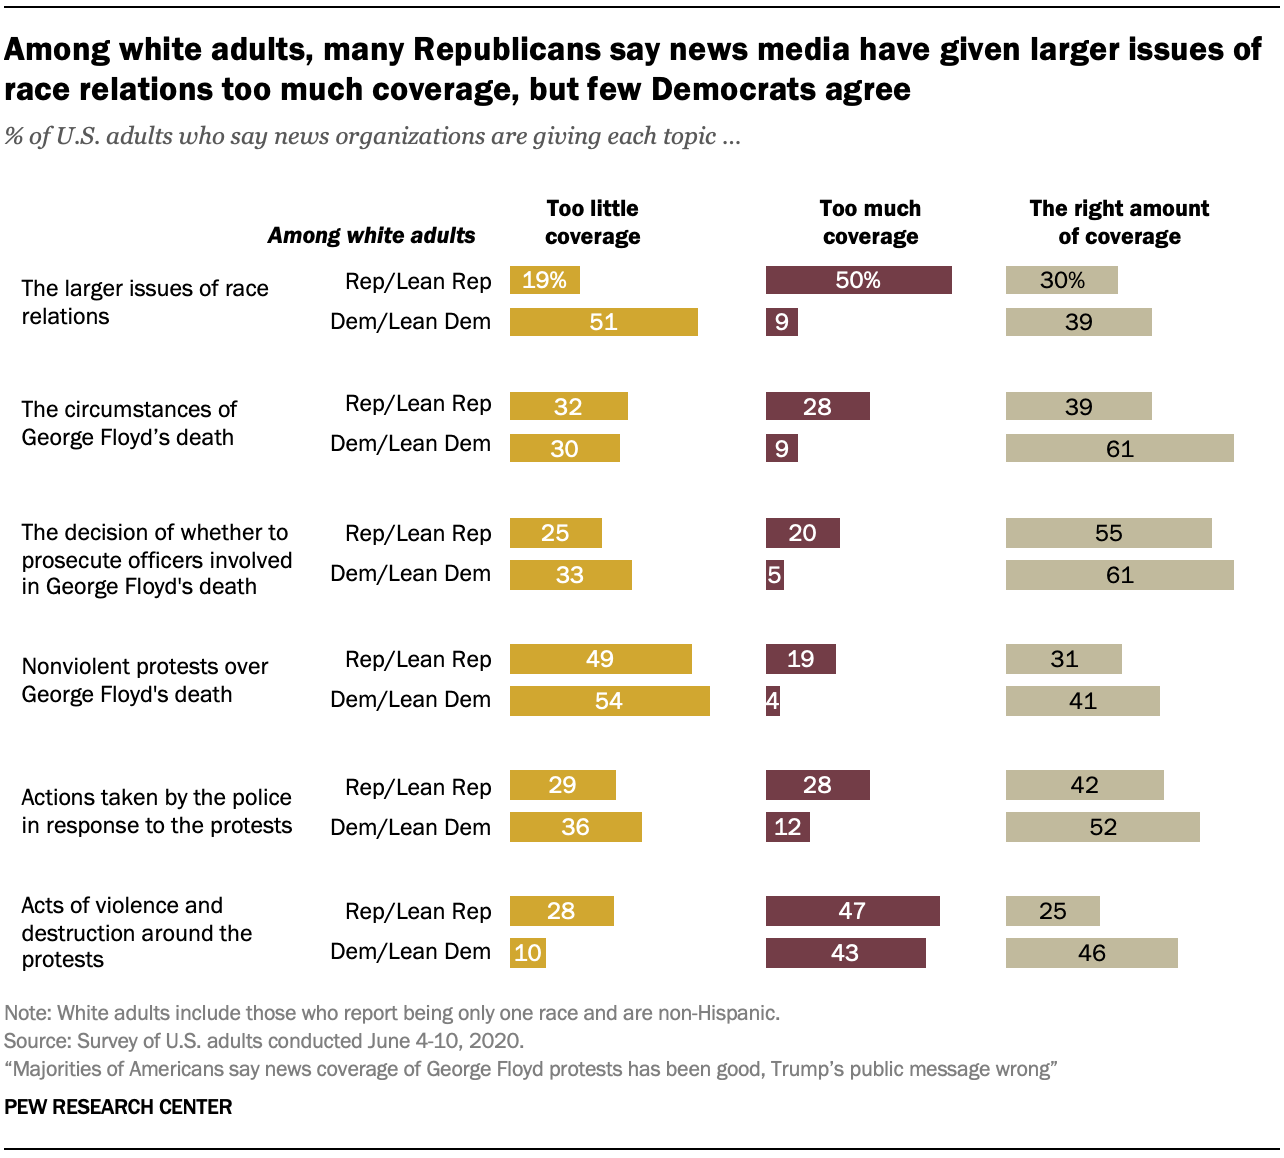 Among white adults, many Republicans say news media have given larger issues of race relations too much coverage, but few Democrats agree